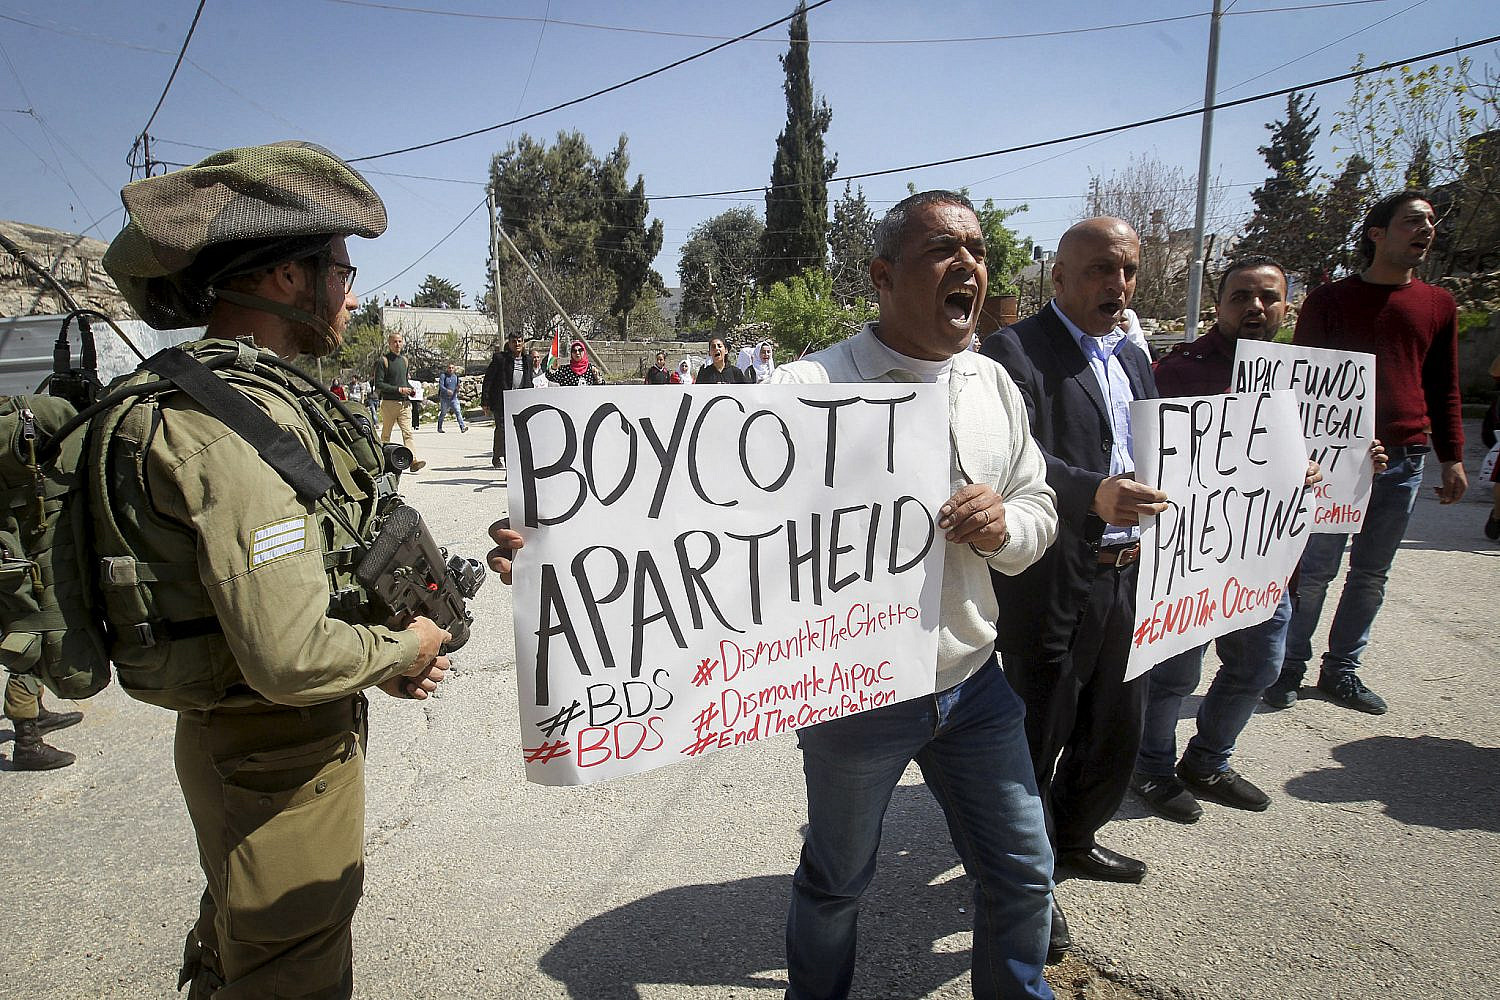 A Palestinian protest against Jewish settlements in the West Bank city of Hebron, March 26, 2017. (Wisam Hashlamoun/Flash90)